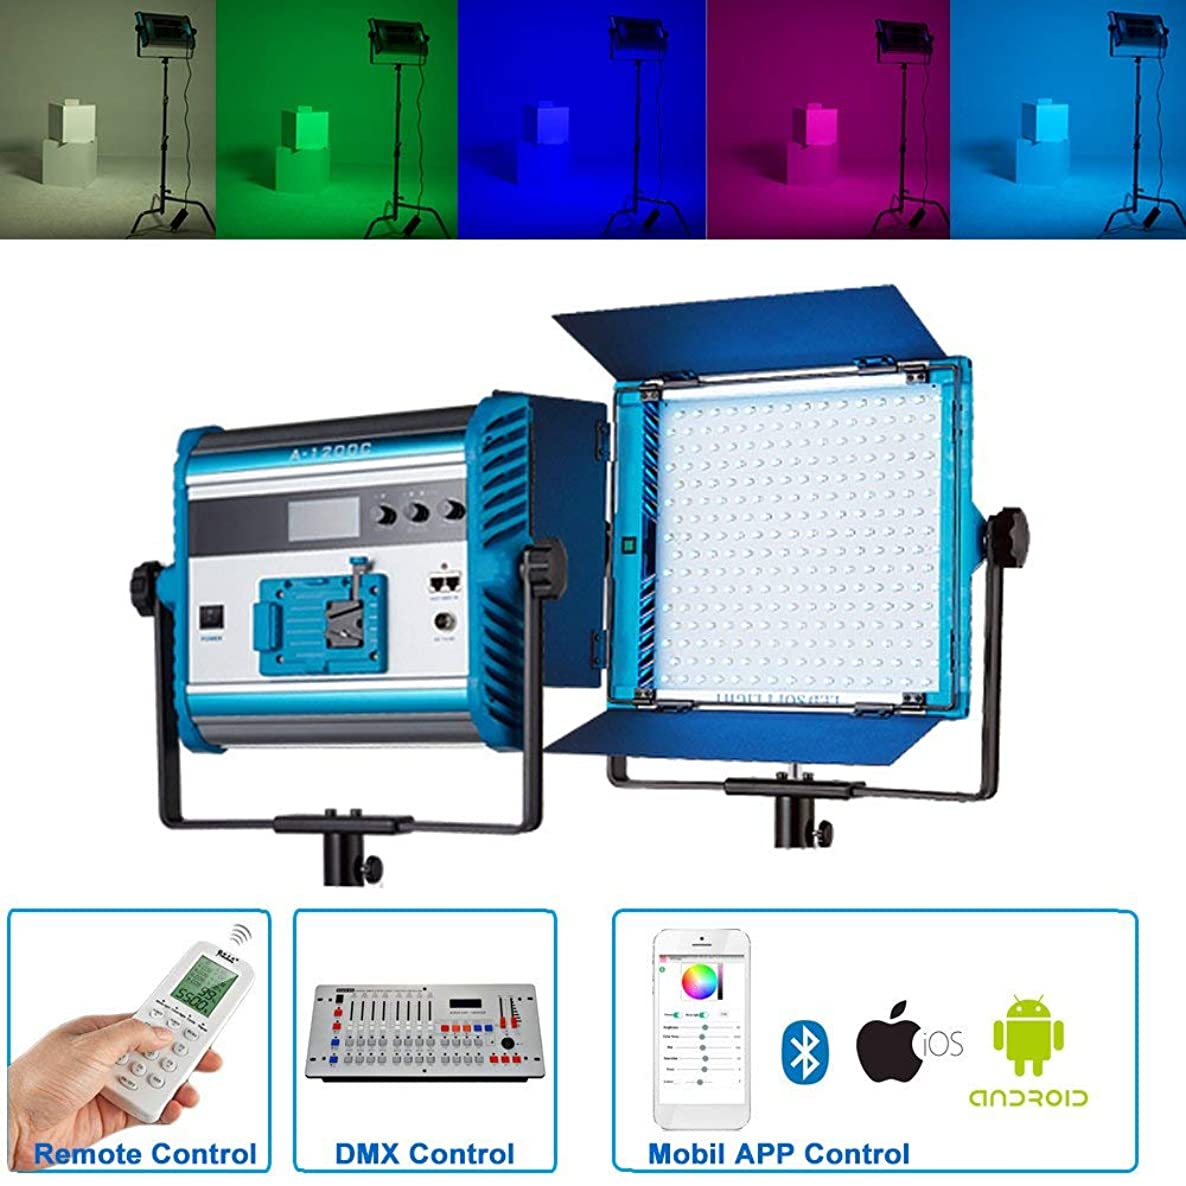 Yidoblo RGBW LED Soft Video Light Panel 2800K-10000K Dimmable by DMX/Phone App/Remote Controller with Barn Doors, 96W 95RA+ Continuous Lighting for Photo Studio Video Film